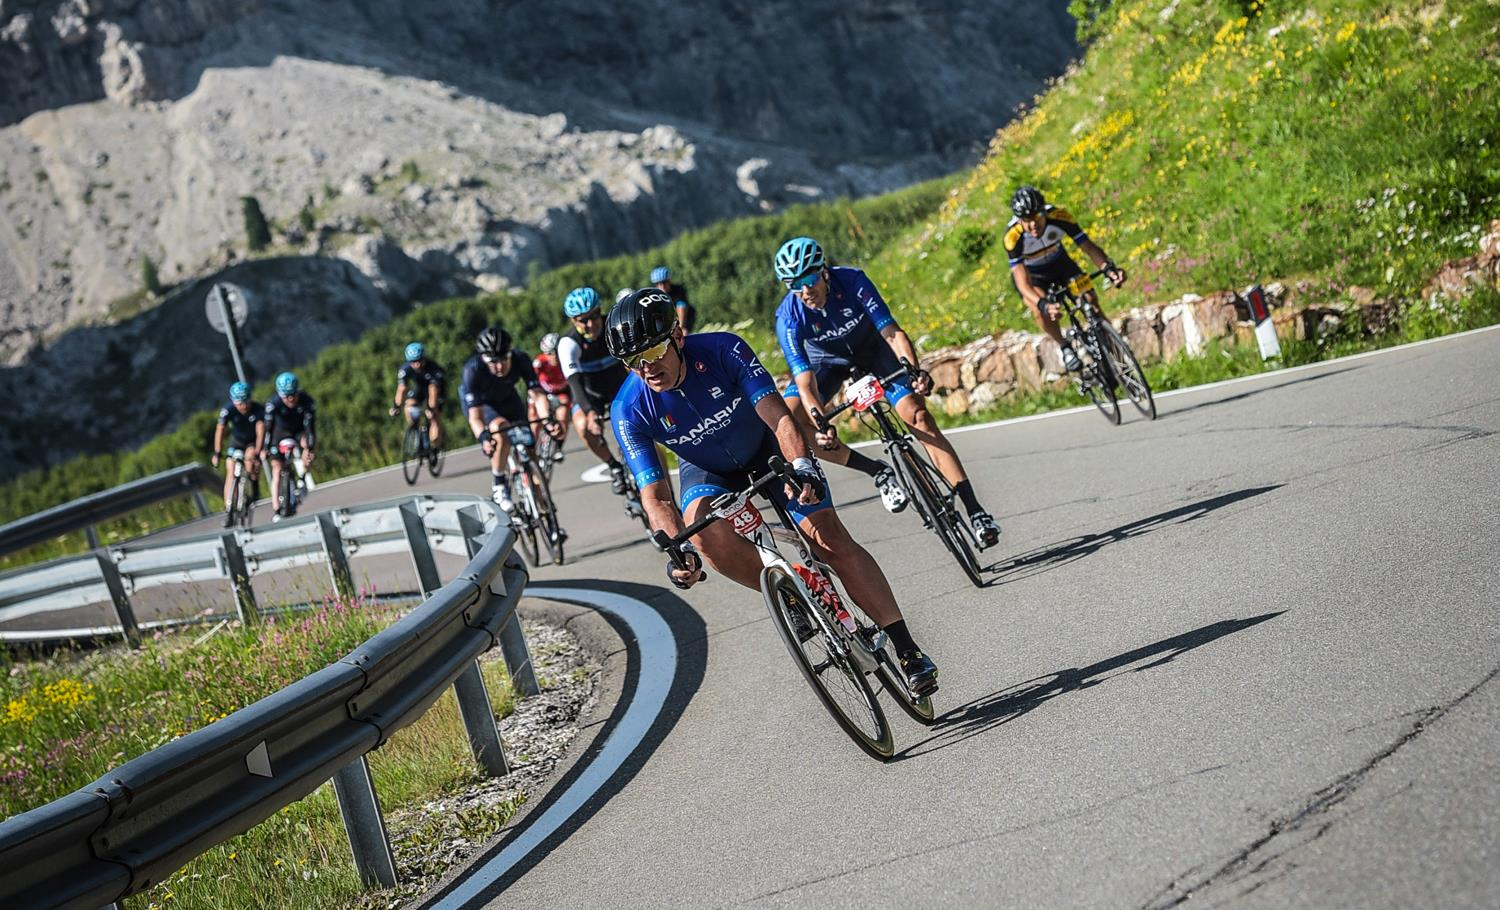 33° Maratona dles Dolomites-Enel: Photo 7